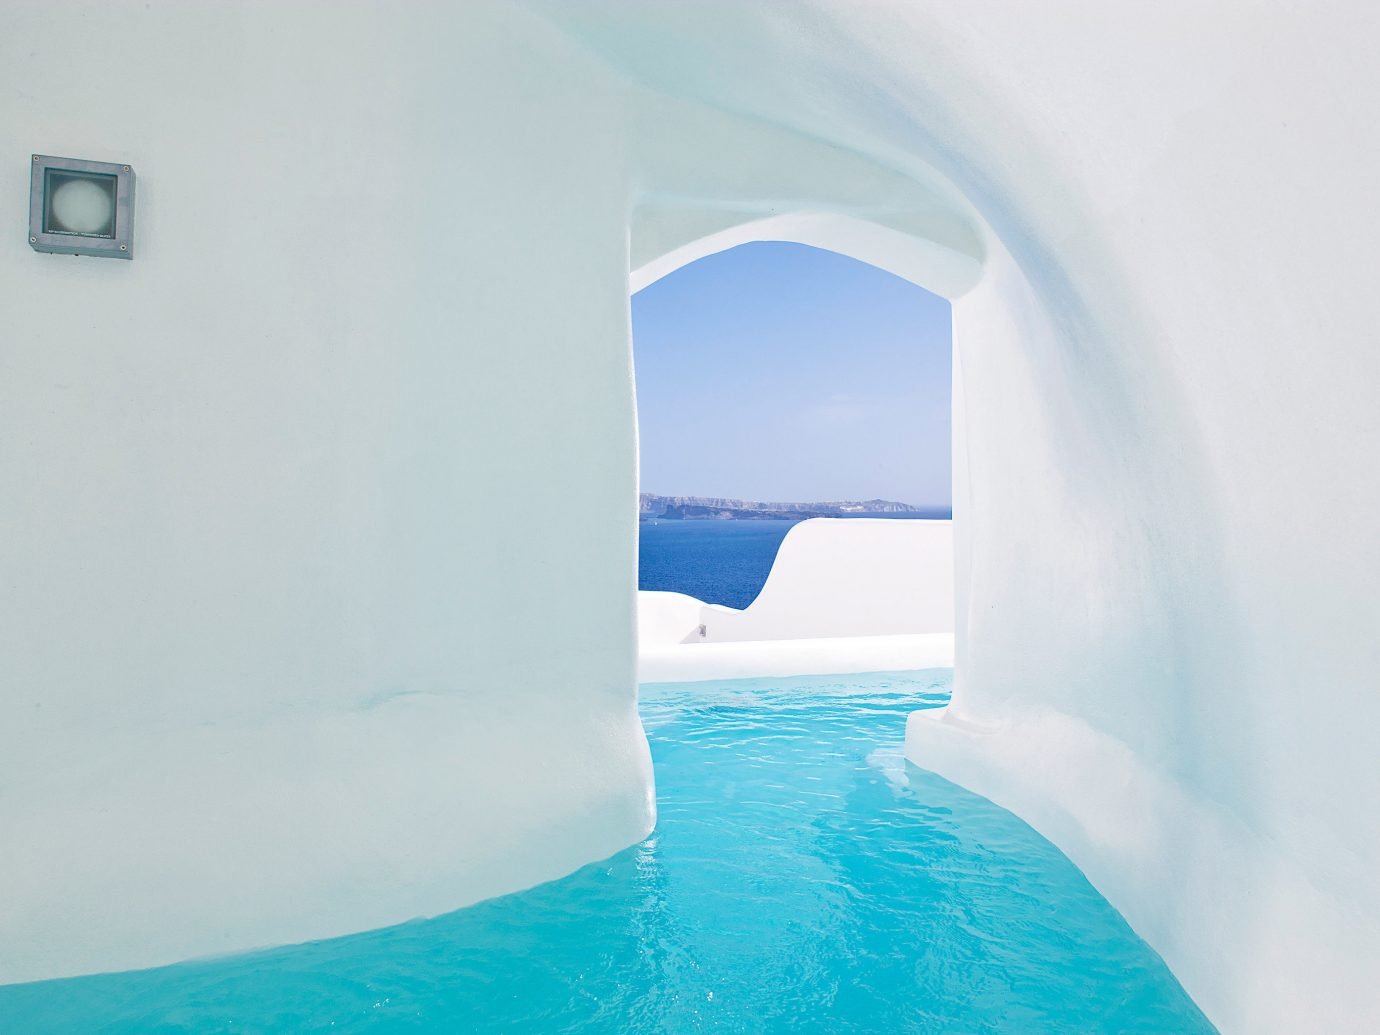 Bedroom Elegant Greece Historic Honeymoon Hot tub/Jacuzzi Hotels Luxury Romance Romantic Santorini Waterfront water blue swimming pool ice hotel